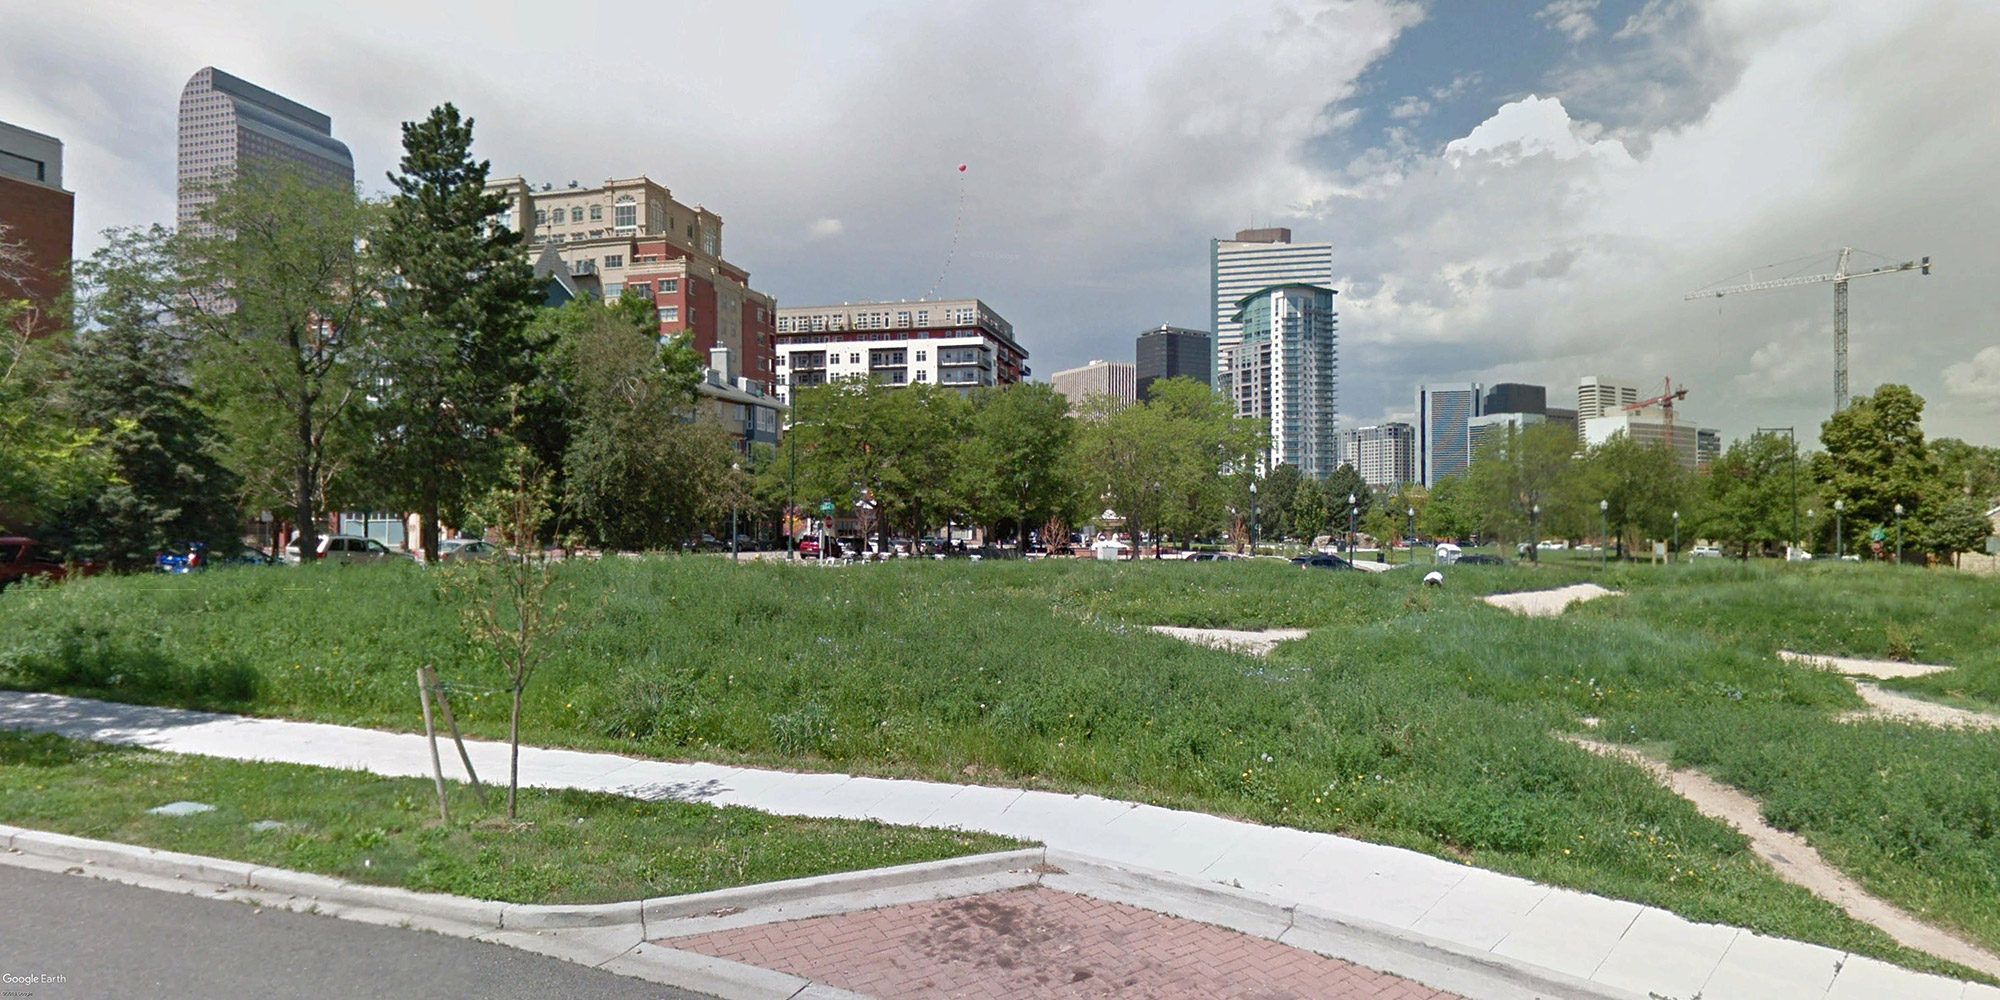 Google street view of the 575 East 20th Avenue site looking west